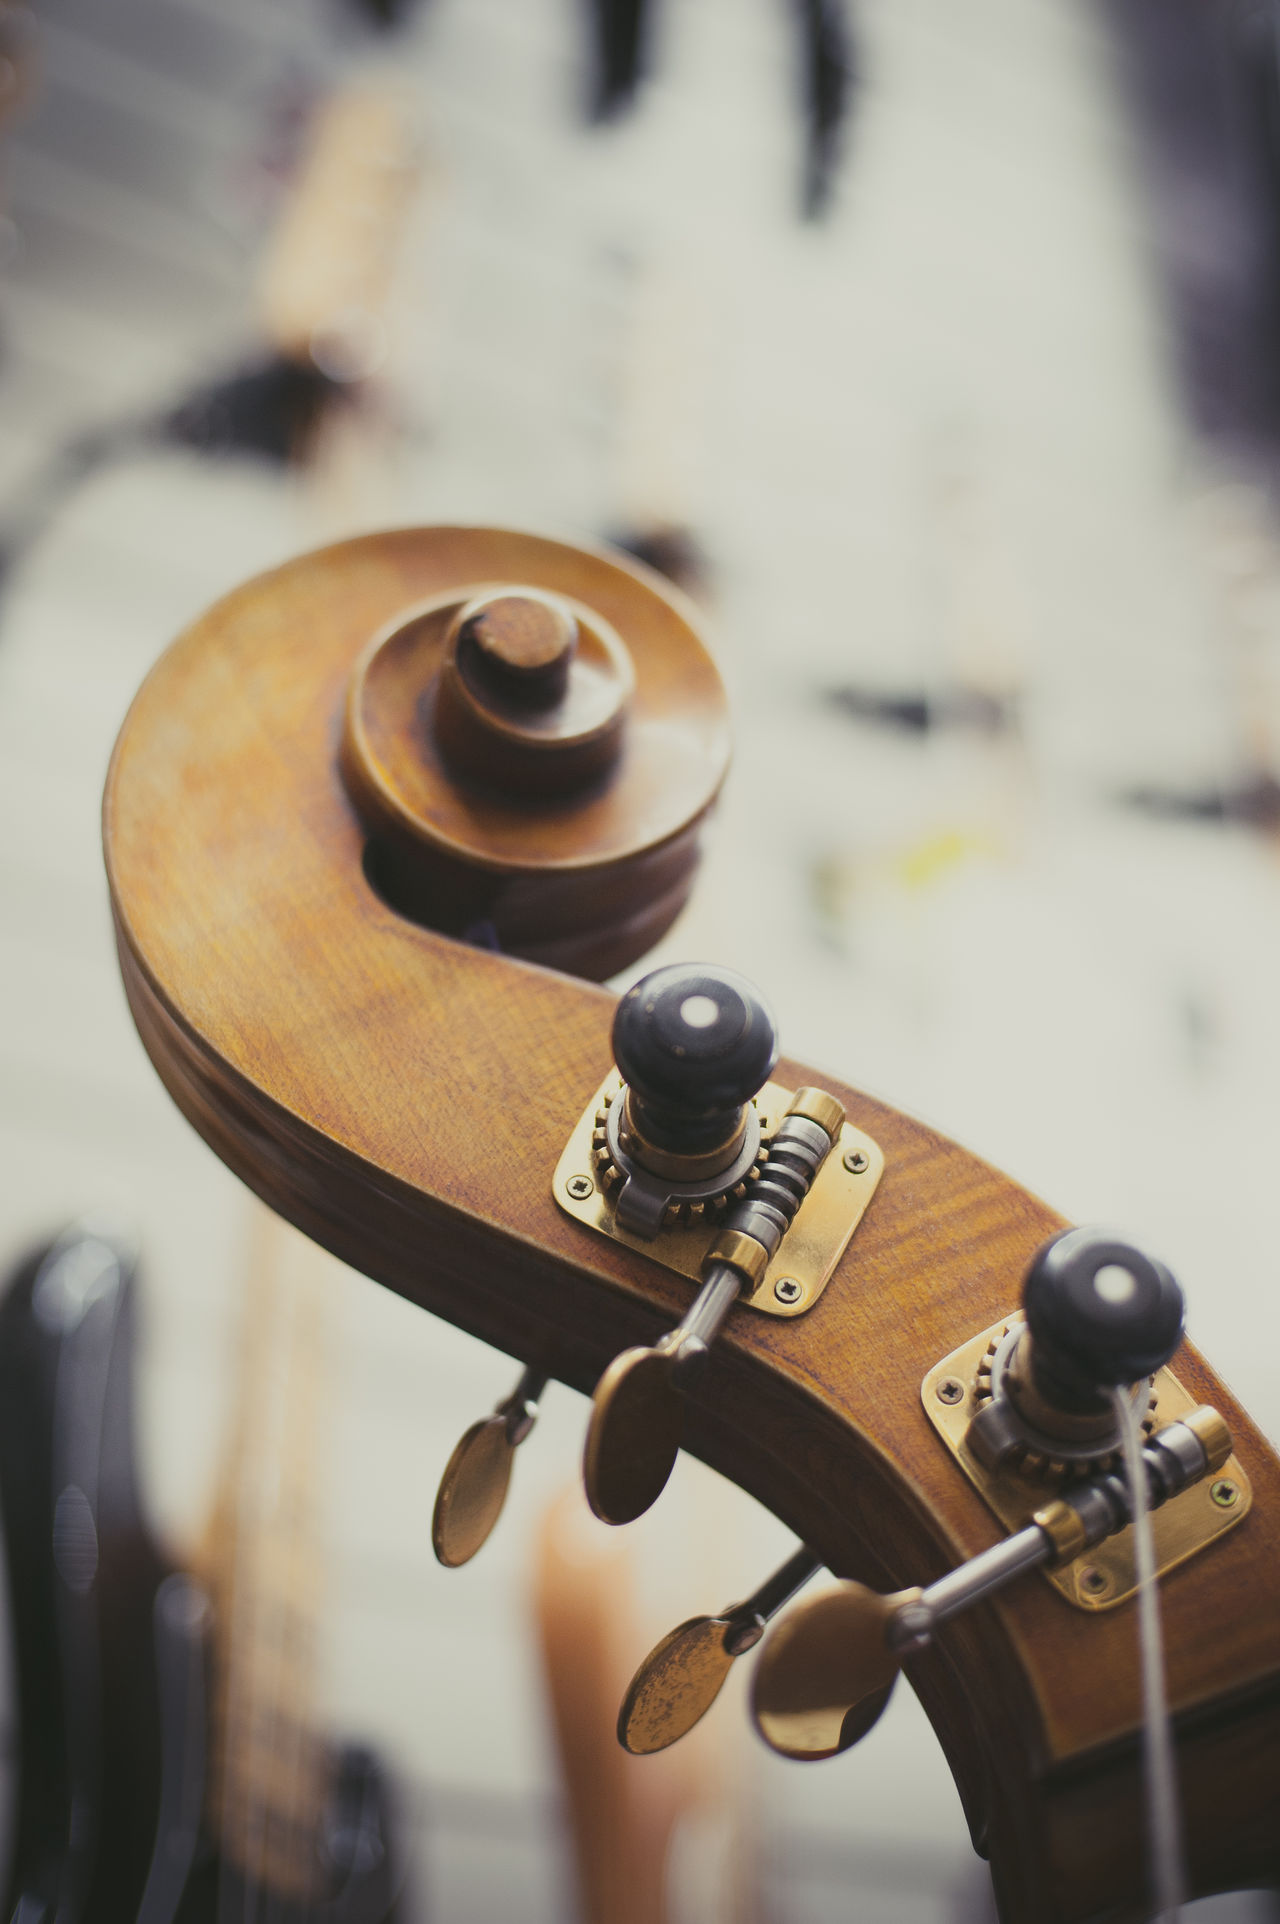 Beautiful stock photos of music, focus on foreground, close-up, indoors